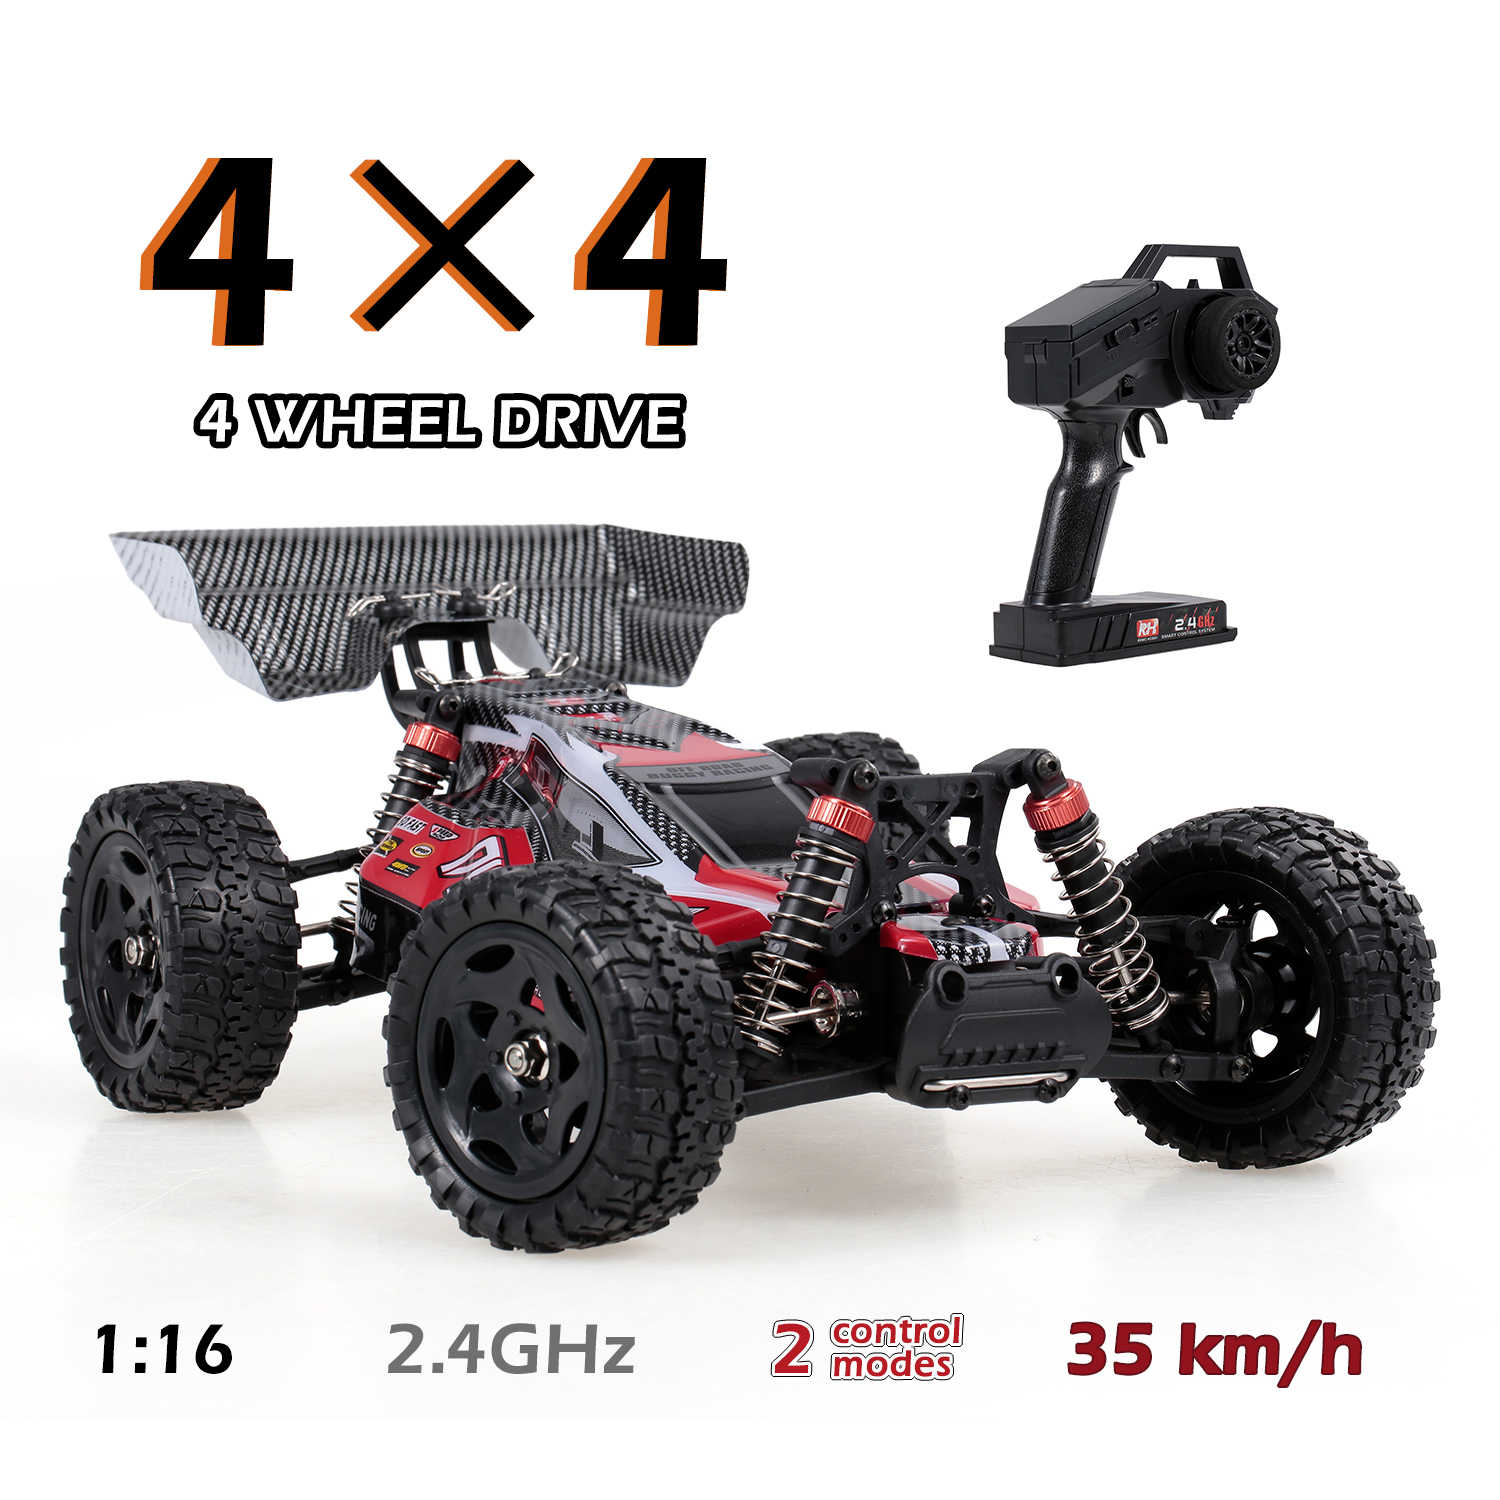 Remo Hobby 1651 Rc Auto 35 Km/h 1/16 2.4 Ghz 4WD Rc Racing Off Road Drift Afstandsbediening Auto Rtr